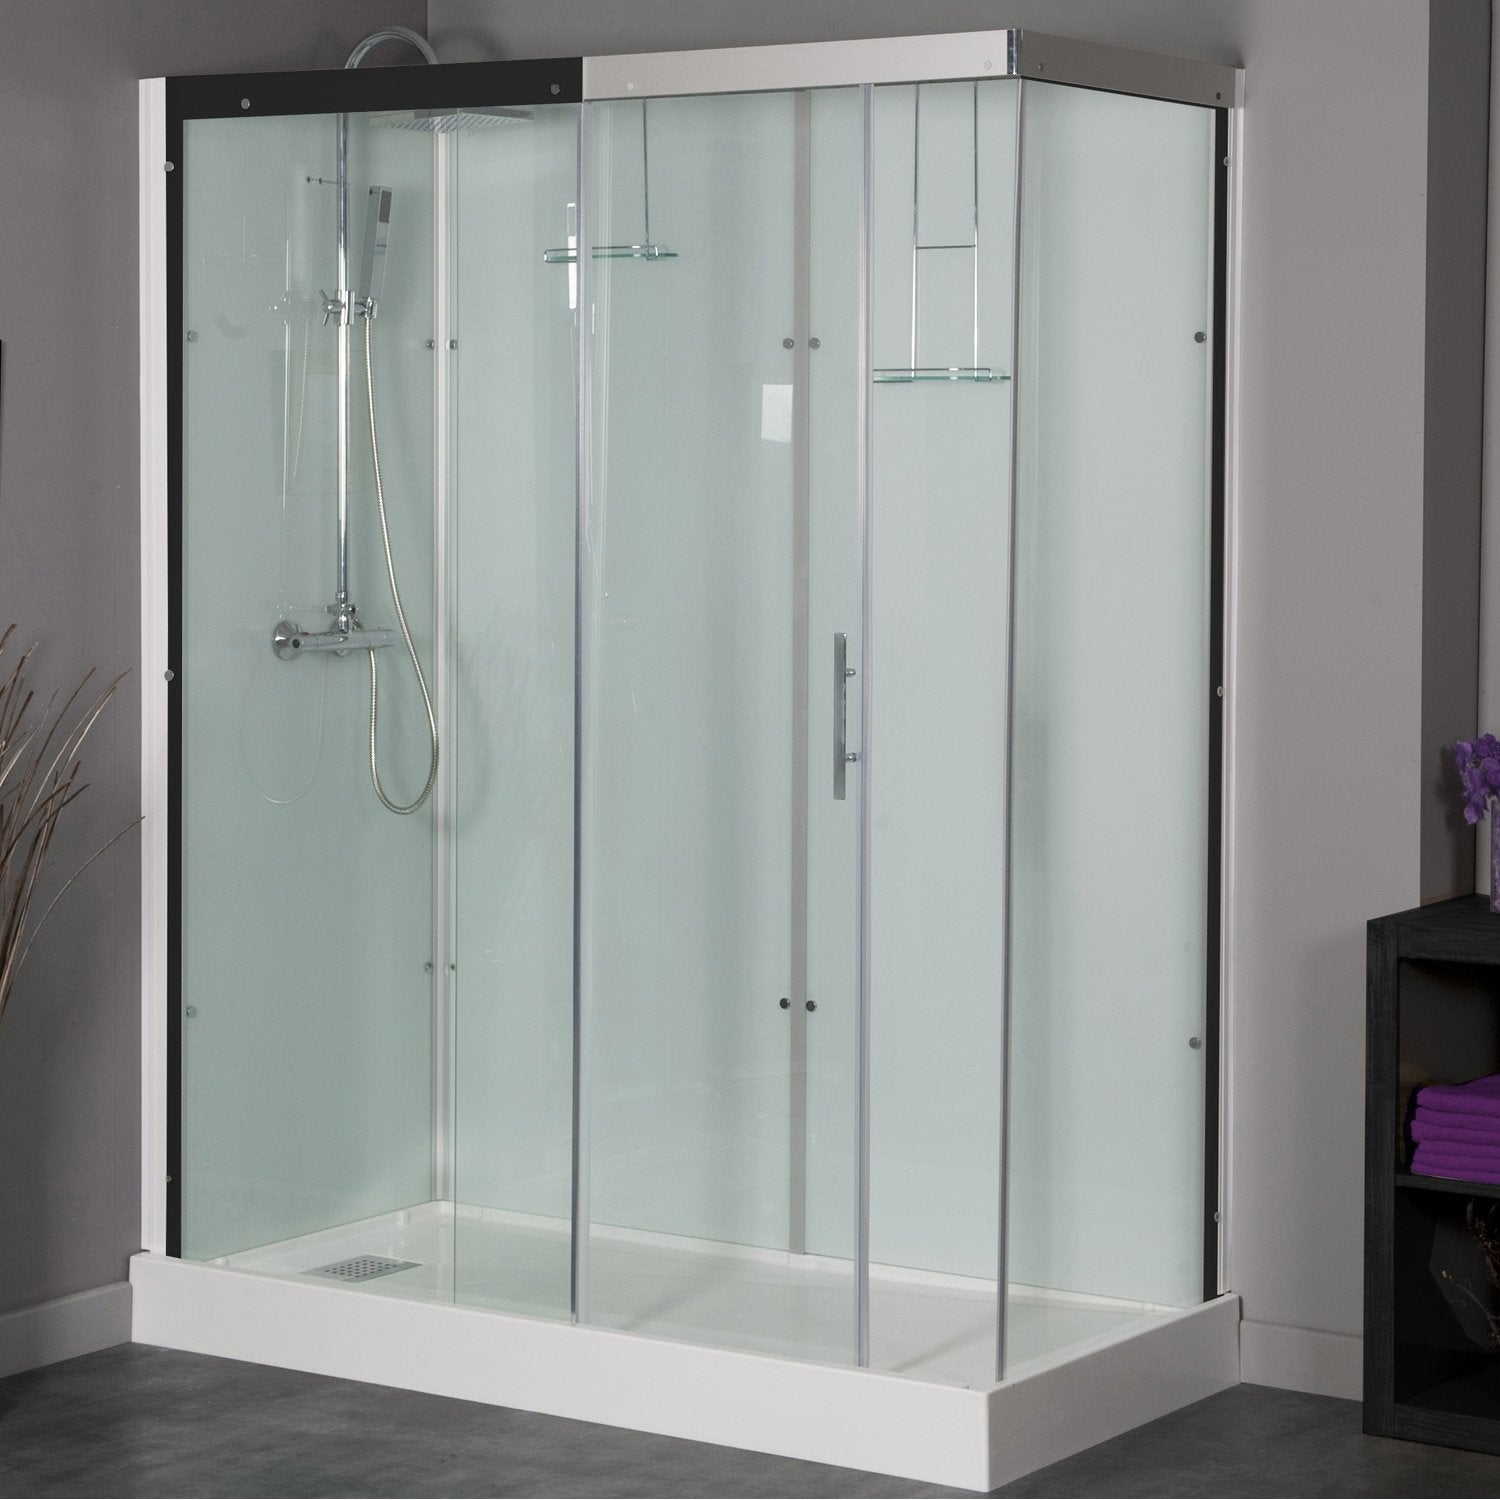 Cabine de douche rectangulaire 160x80 cm thalaglass 2 for Renovation cabine de douche